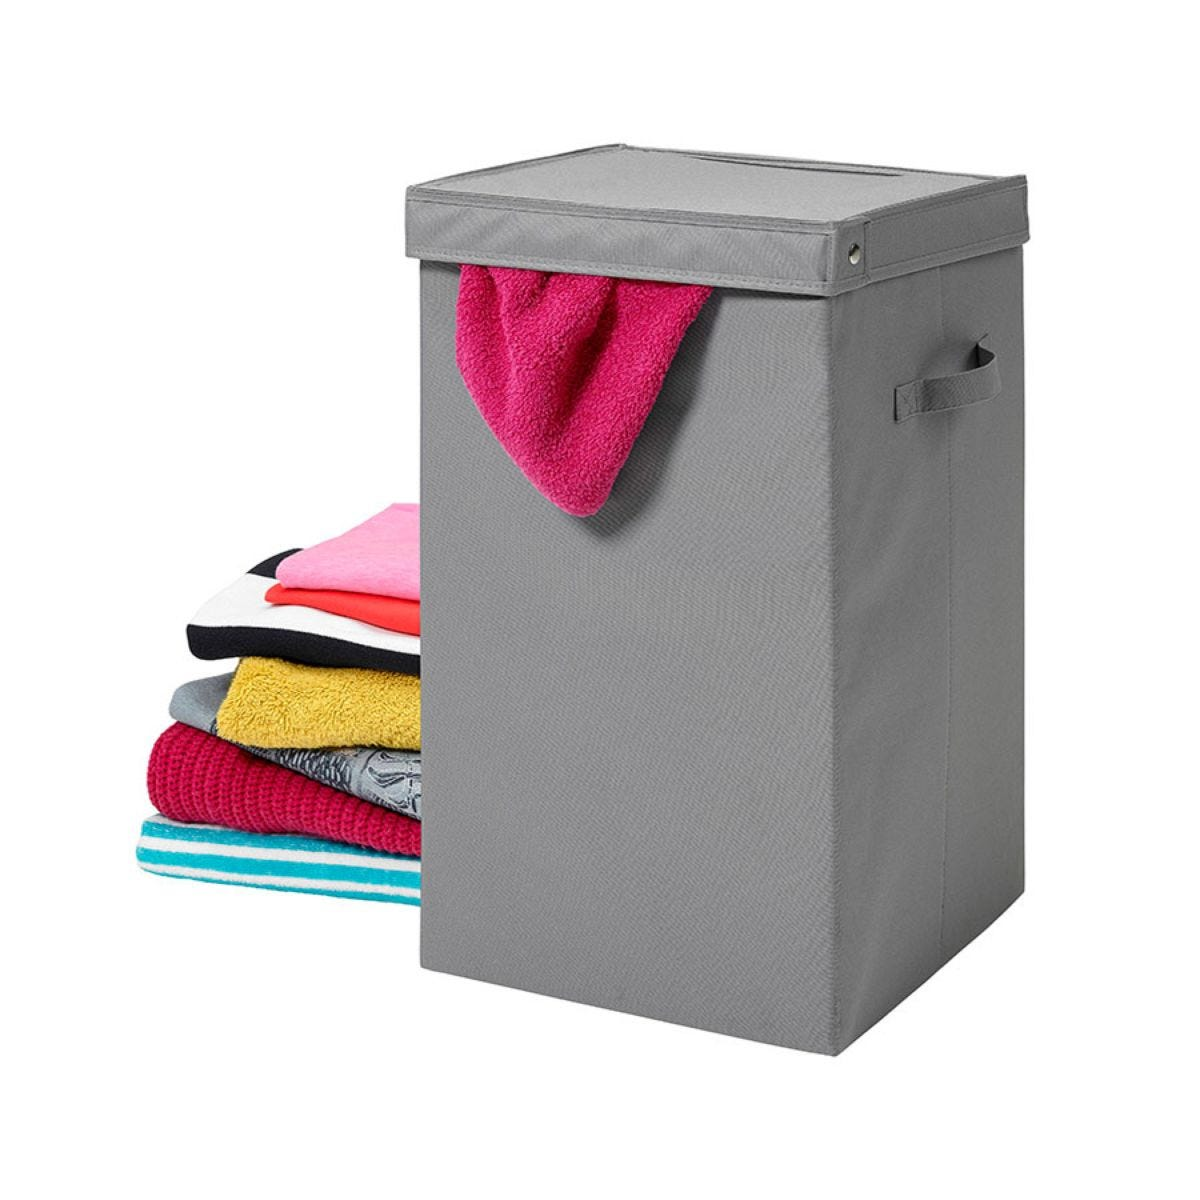 H&L Russel Heavy Duty Laundry Box with Lid - Grey